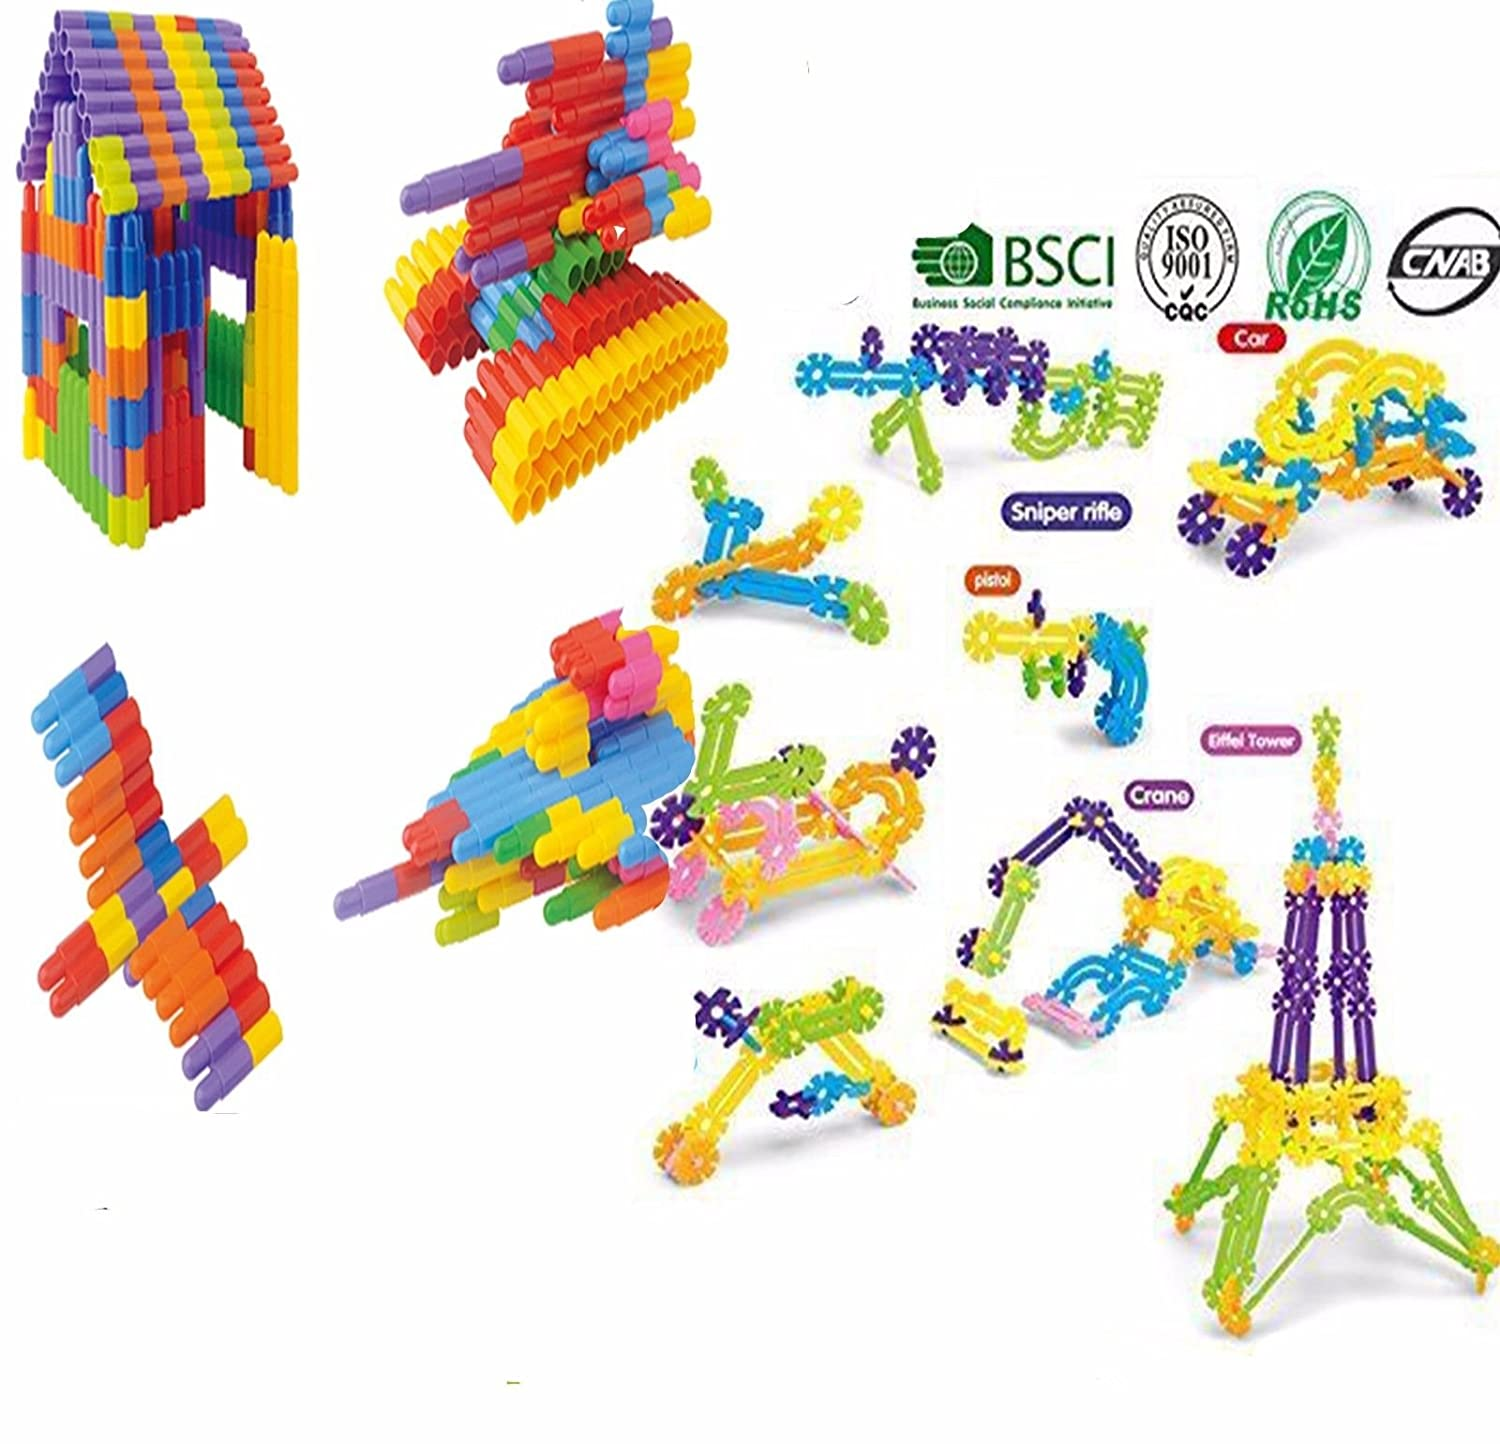 Shantou Upgraded 252 pc Snowflake building toys Different size Mix colors not like others best gift Construction blocks interlocking preschool STEM 126 pc mixed